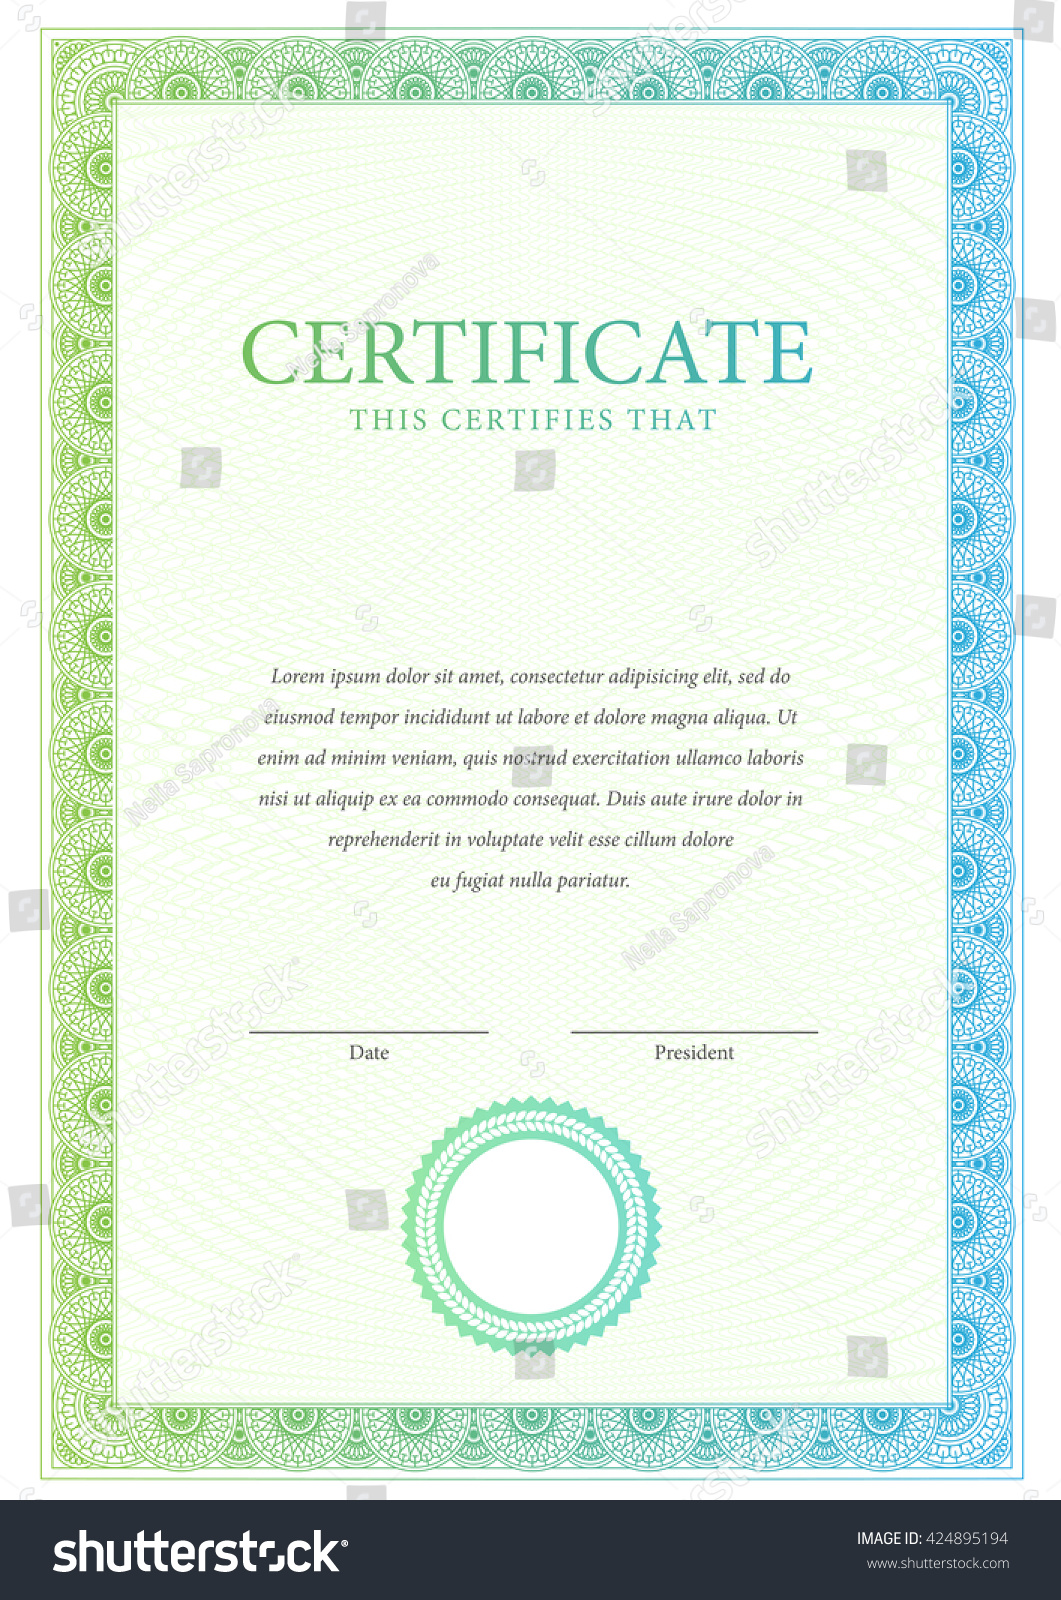 Certificate template diplomas currency award free certificate of certificate template diplomas currency award background stock stock vector certificate template diplomas currency award background gift yelopaper Image collections